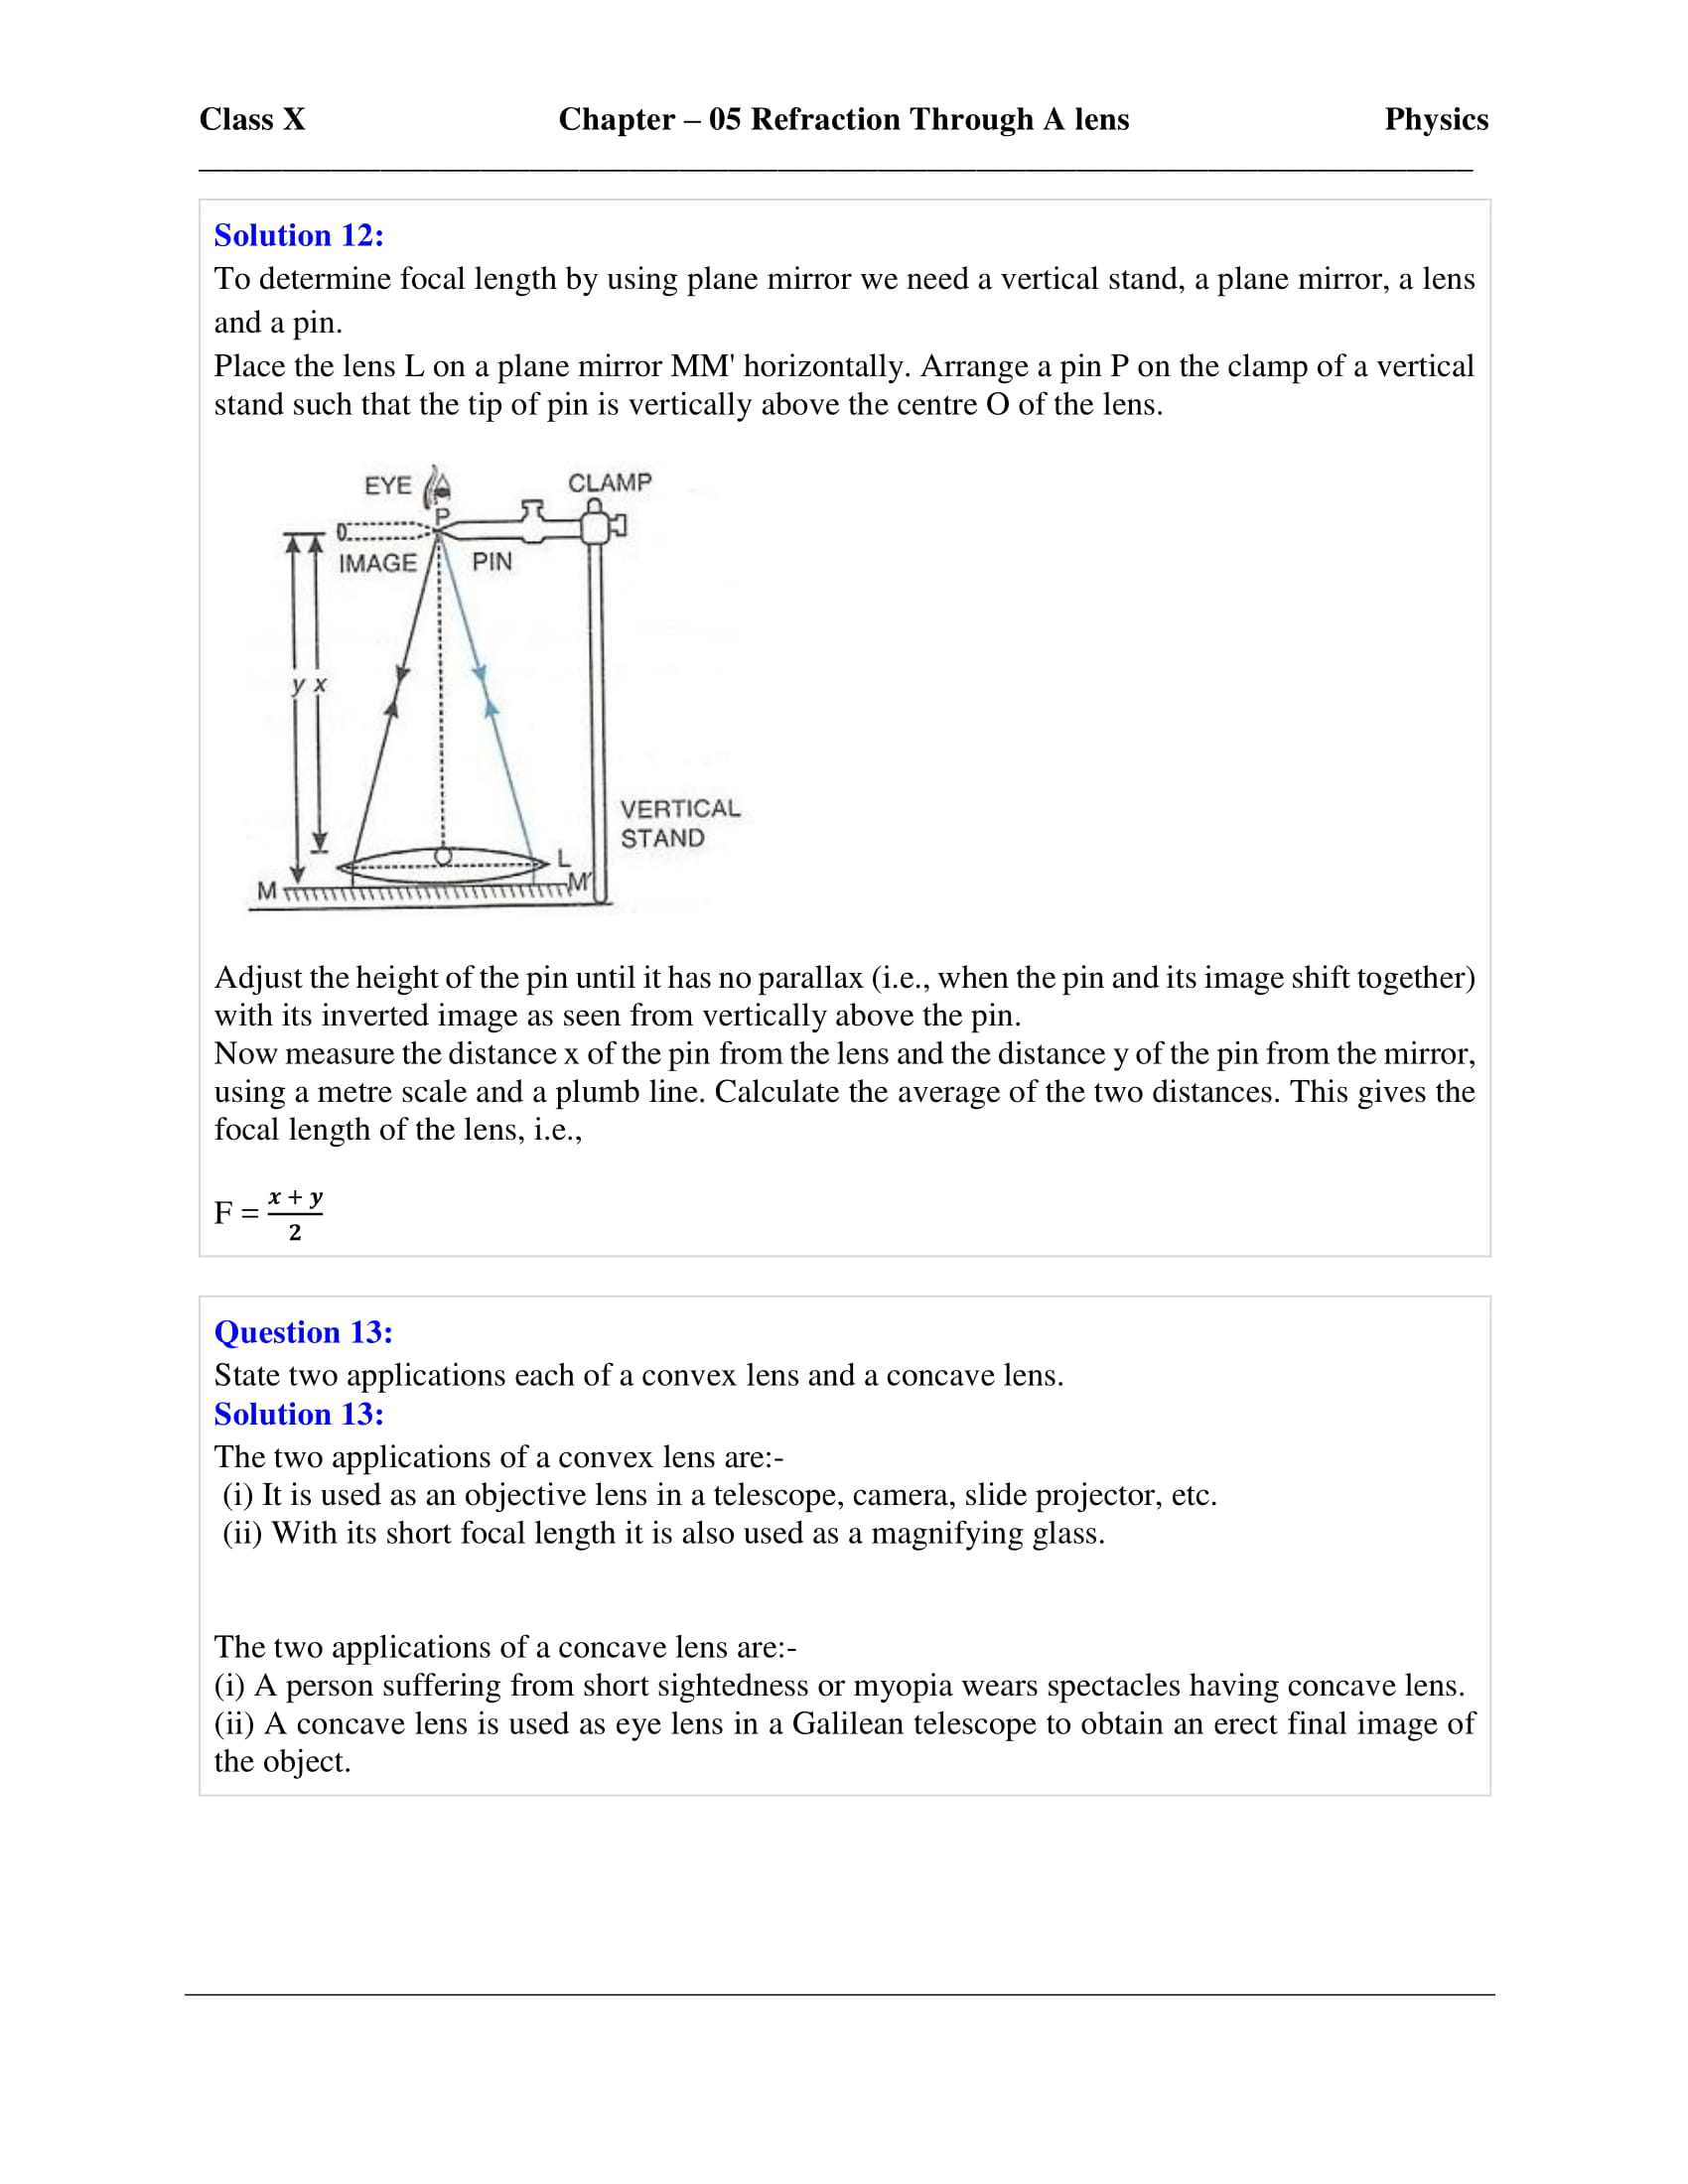 icse-selina-physics-solutions-class-10-chapter-5-refraction-through-a-lens-36